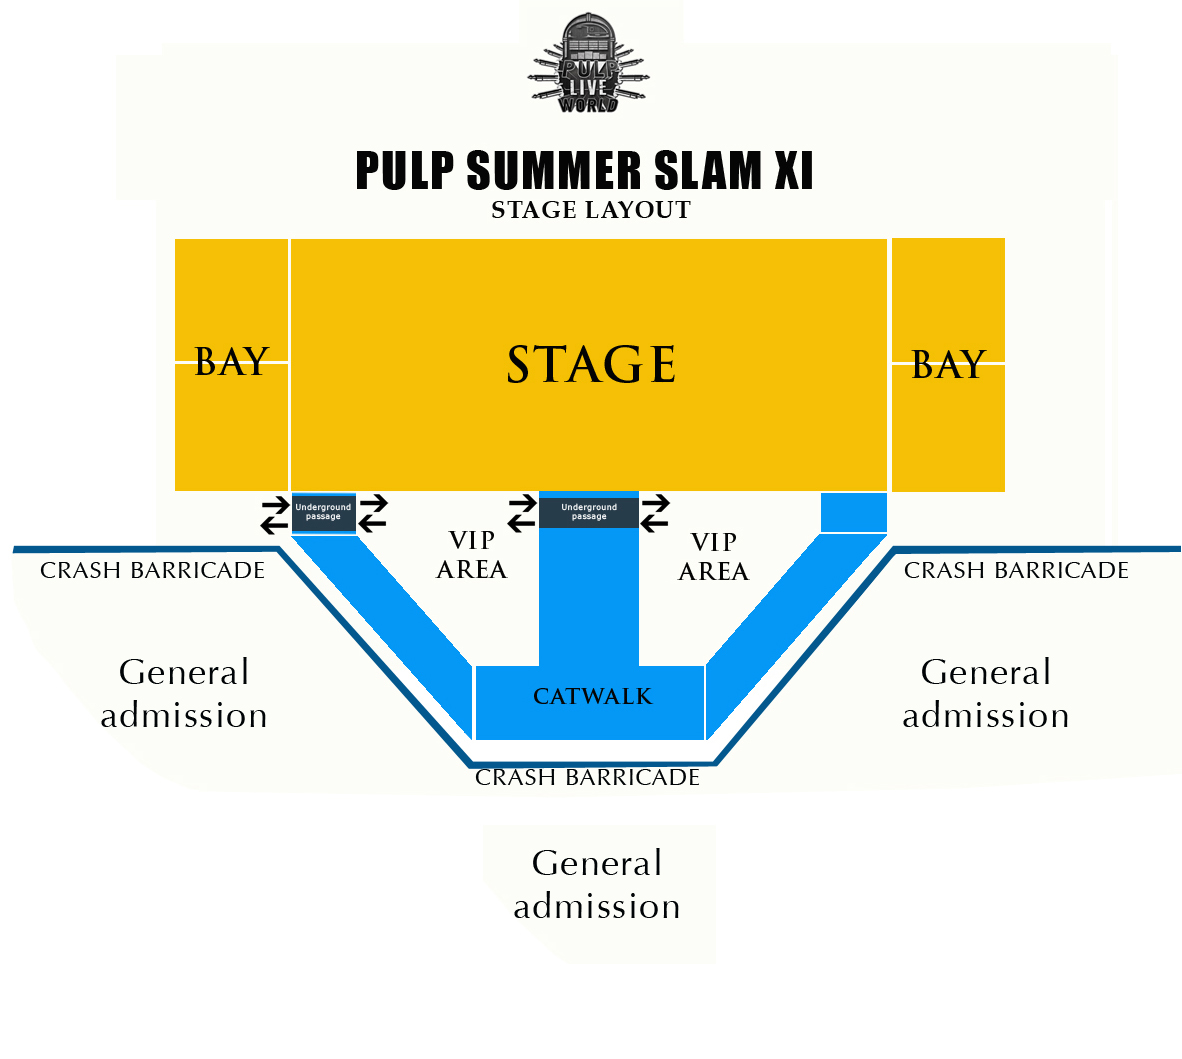 VIP Package is available for Php 5,000.00, PULP SUMMER SLAM 11: Stage Layout, VIP Passes now Available, Pulp Summer Slam 11 Stage Layout,